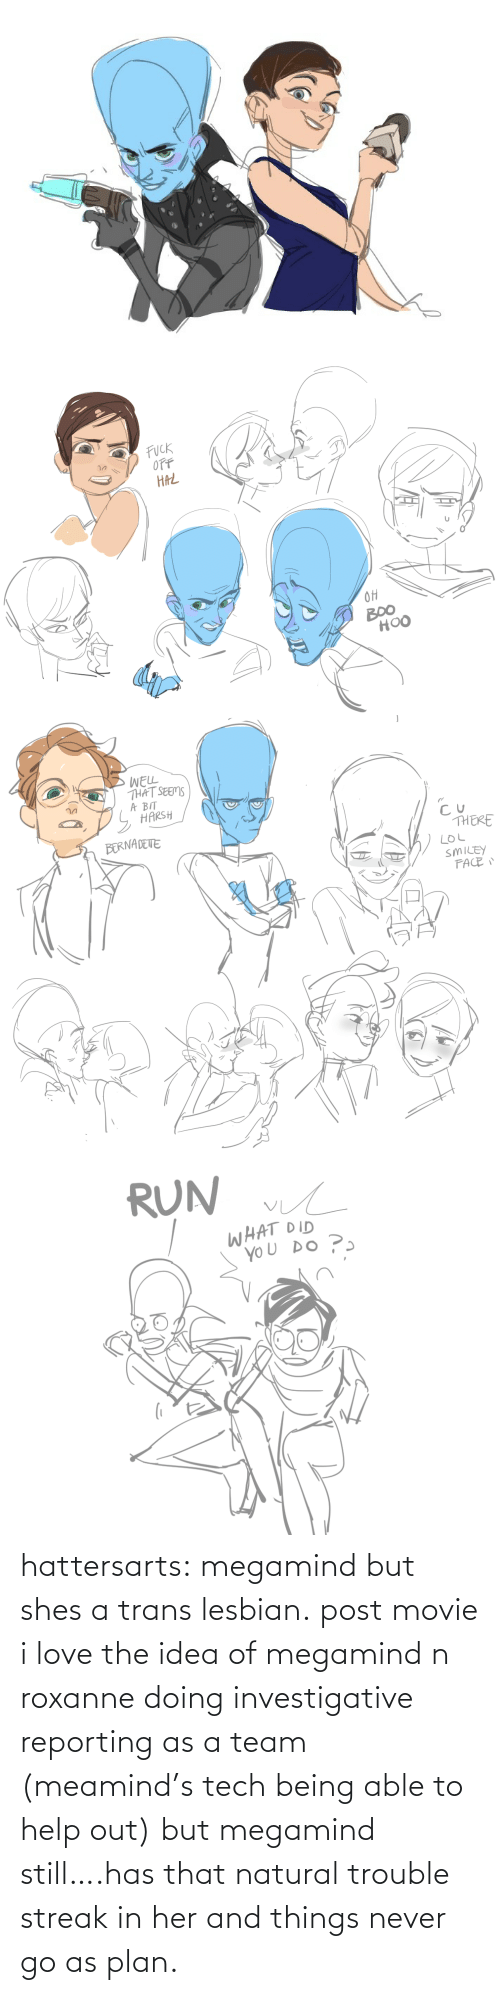 trouble: hattersarts:  megamind but shes a trans lesbian.  post movie i love the idea of megamind n roxanne doing investigative reporting as a team (meamind's tech being able to help out) but megamind still….has that natural trouble streak in her and things never go as plan.